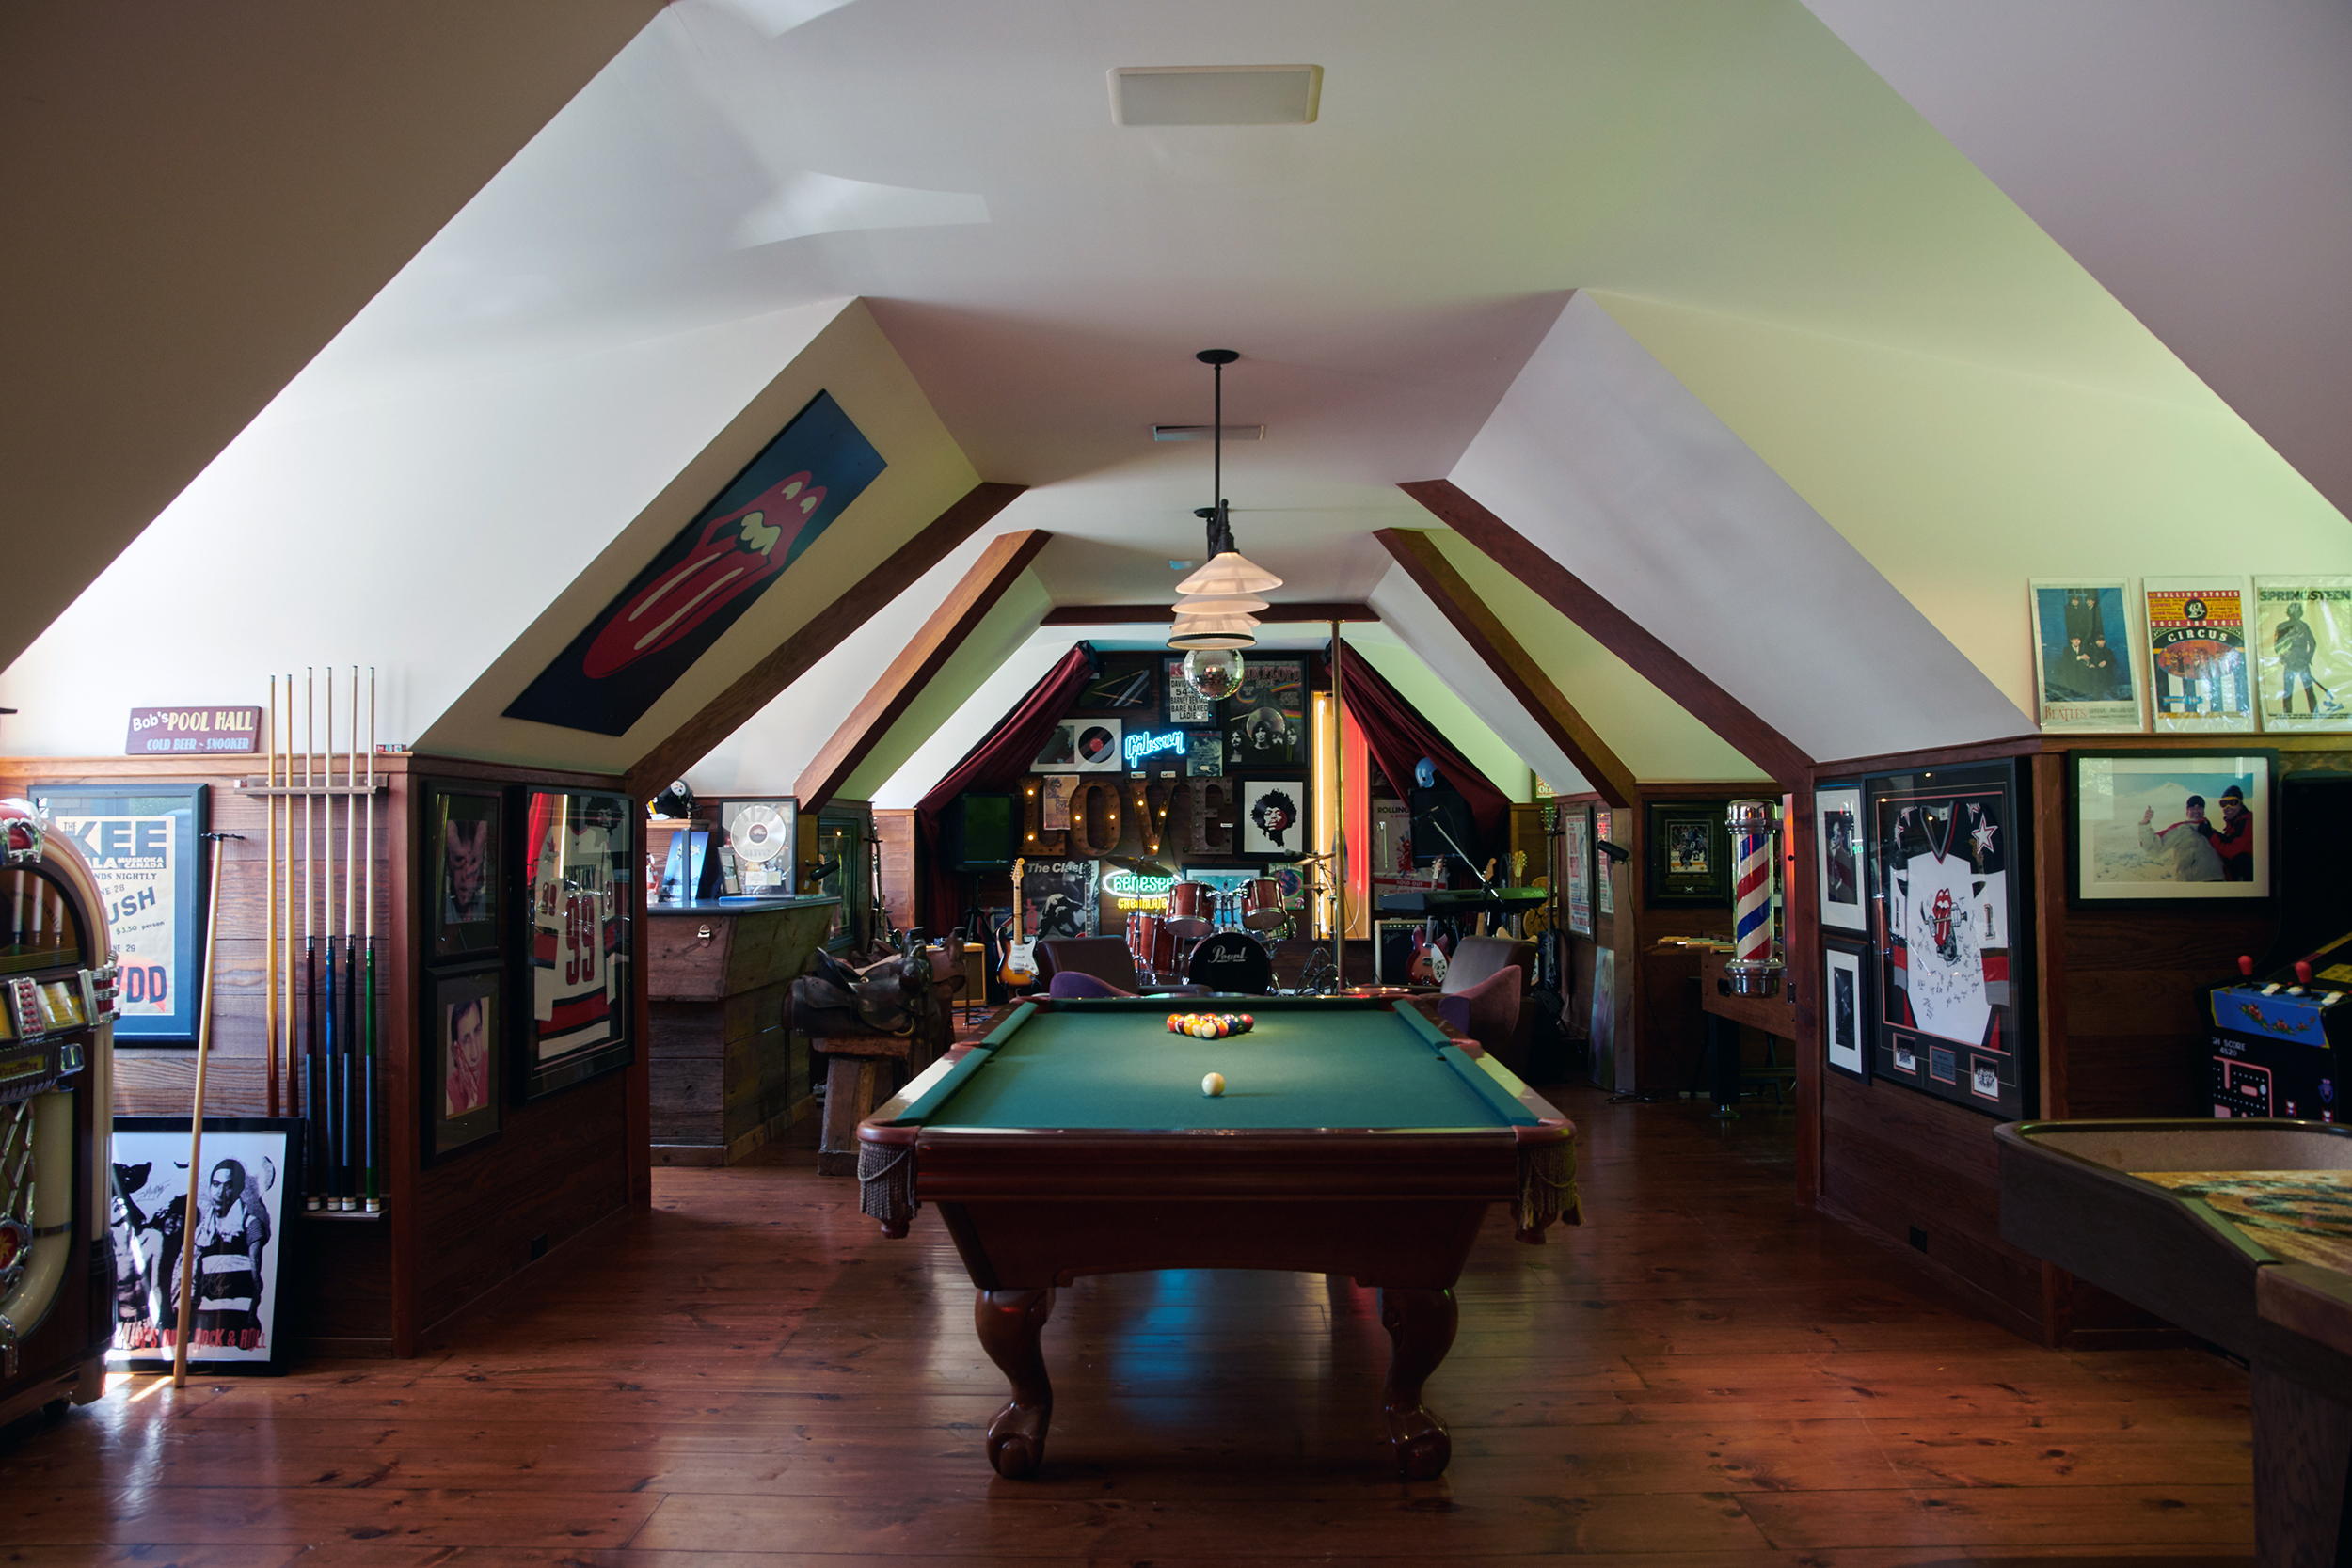 Band Stage & Game Room